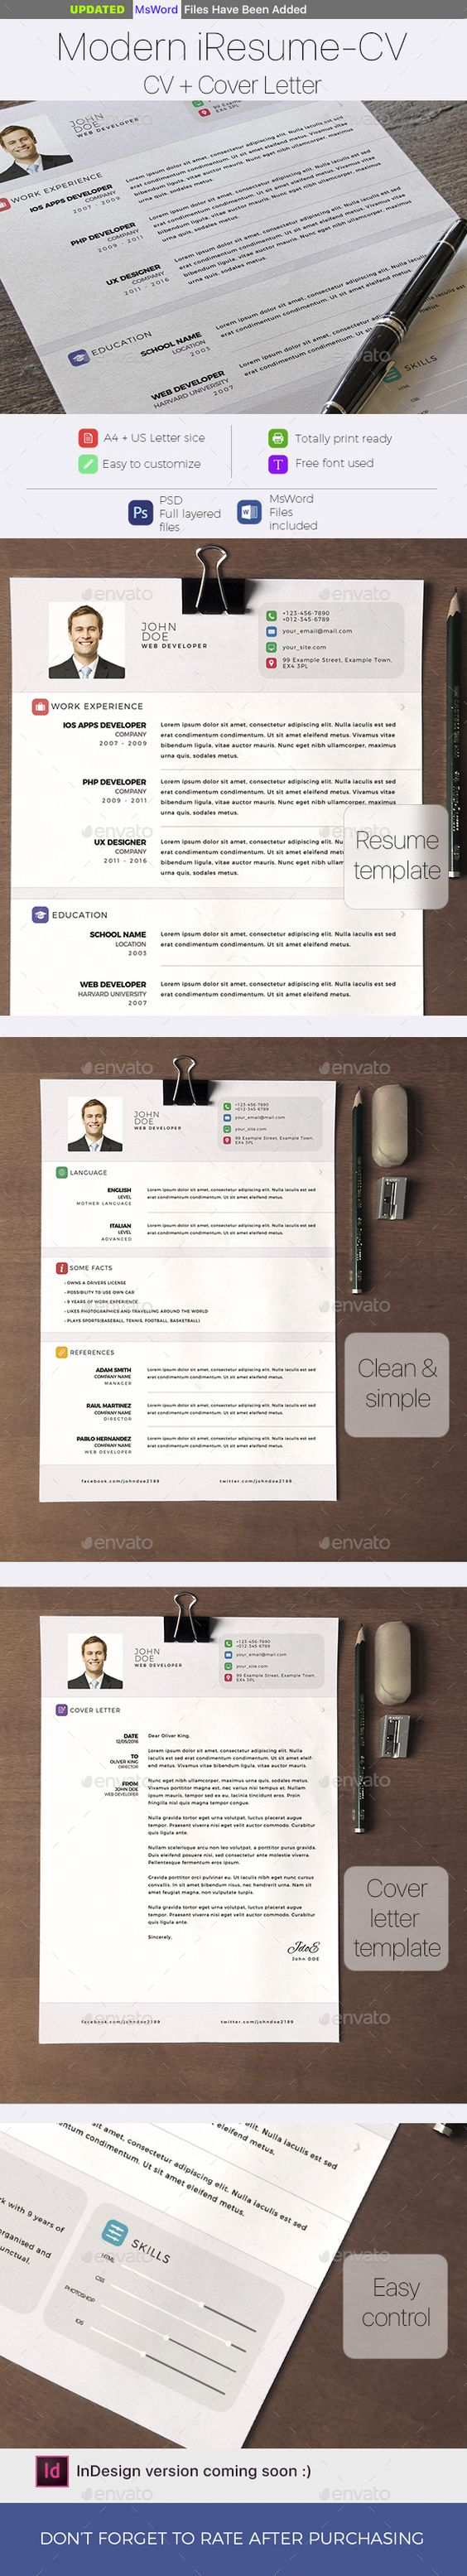 Cv Templates Design%0A Clean Professional Resume   CV Template PSD  design Download   http   graphicriver net item cleanprofessionalresumecv          ref u   dksioks    Pinterest